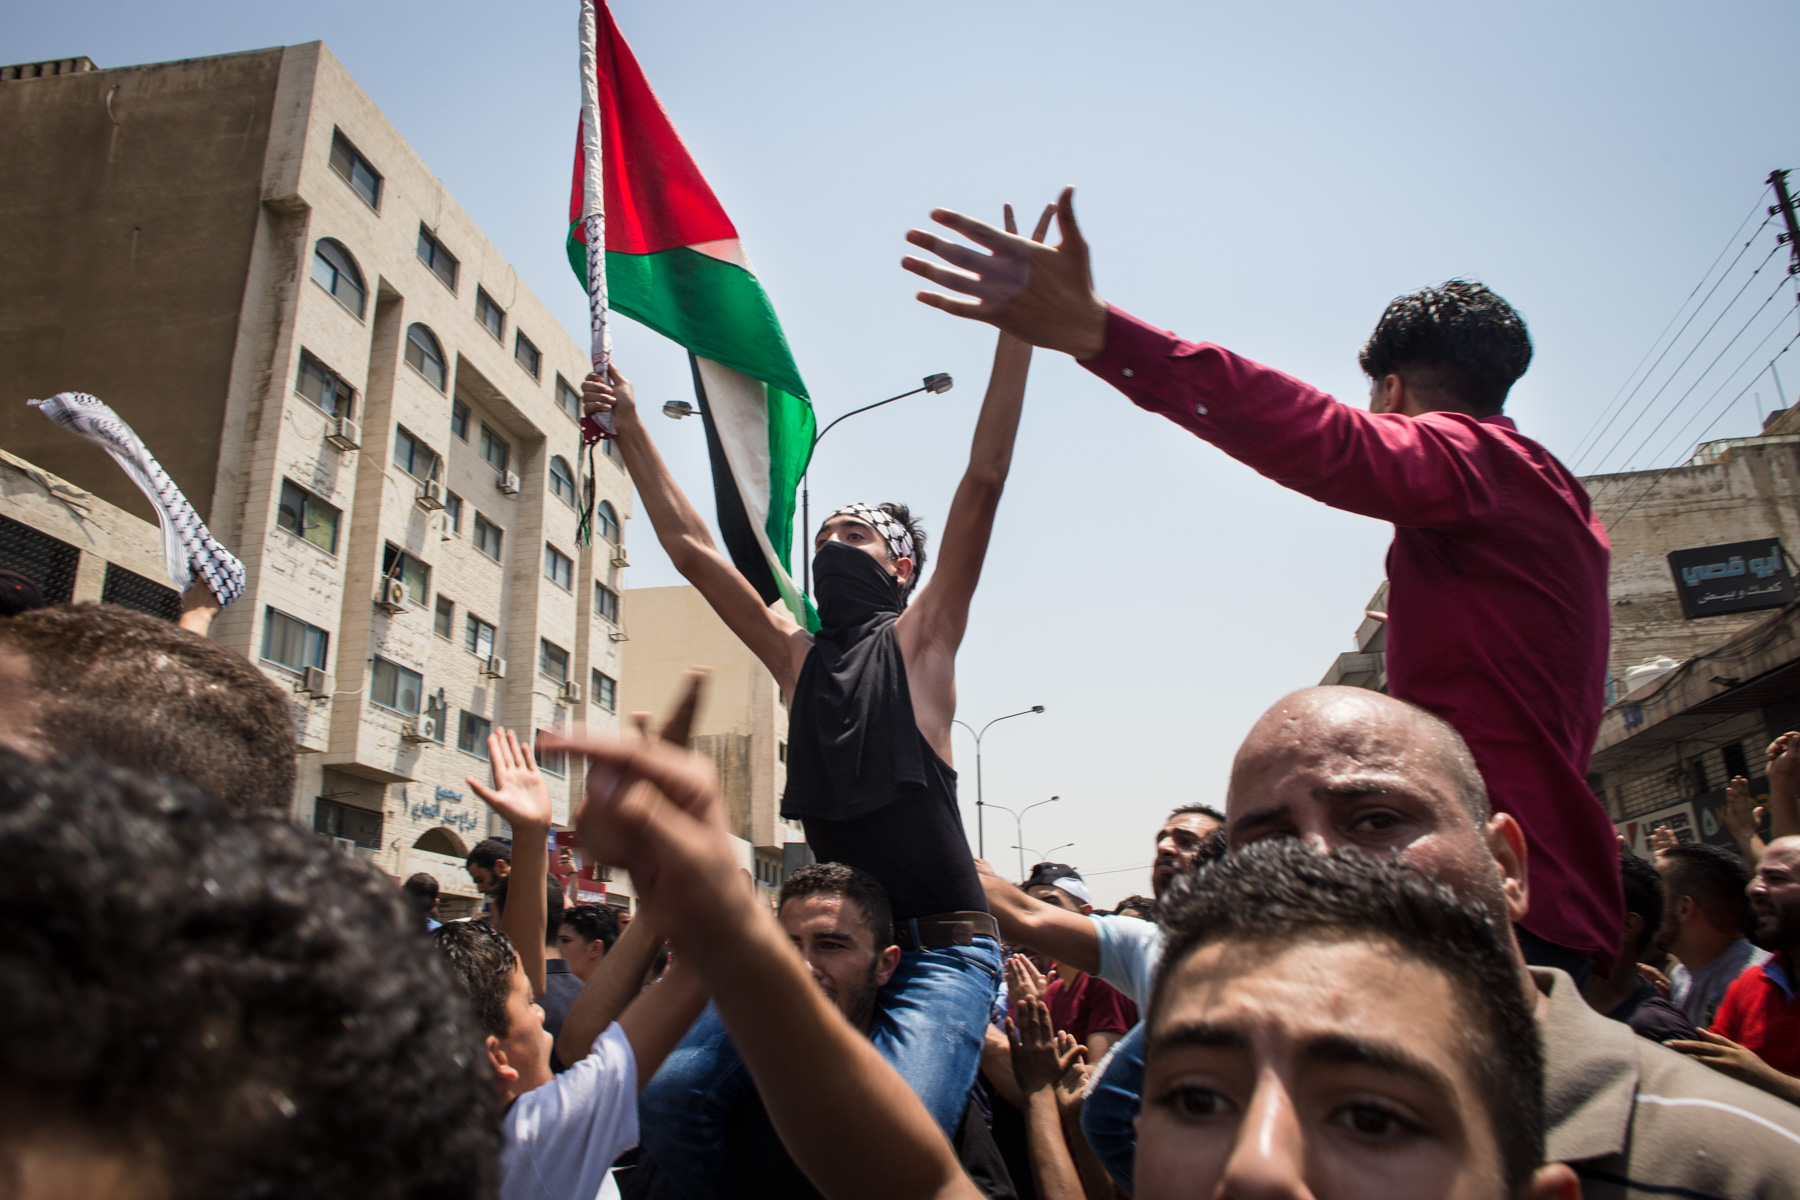 Mourners march, waving the Palestinian flag, at the funeral of Mohammed al-Jawawdeh, a 17-year-old Jordanian, who was killed on Sunday evening by an Israeli security guard who said he was attacked by him with a screwsdriver, on Tuesday, July 25, 2017 in Amman, Jordan.